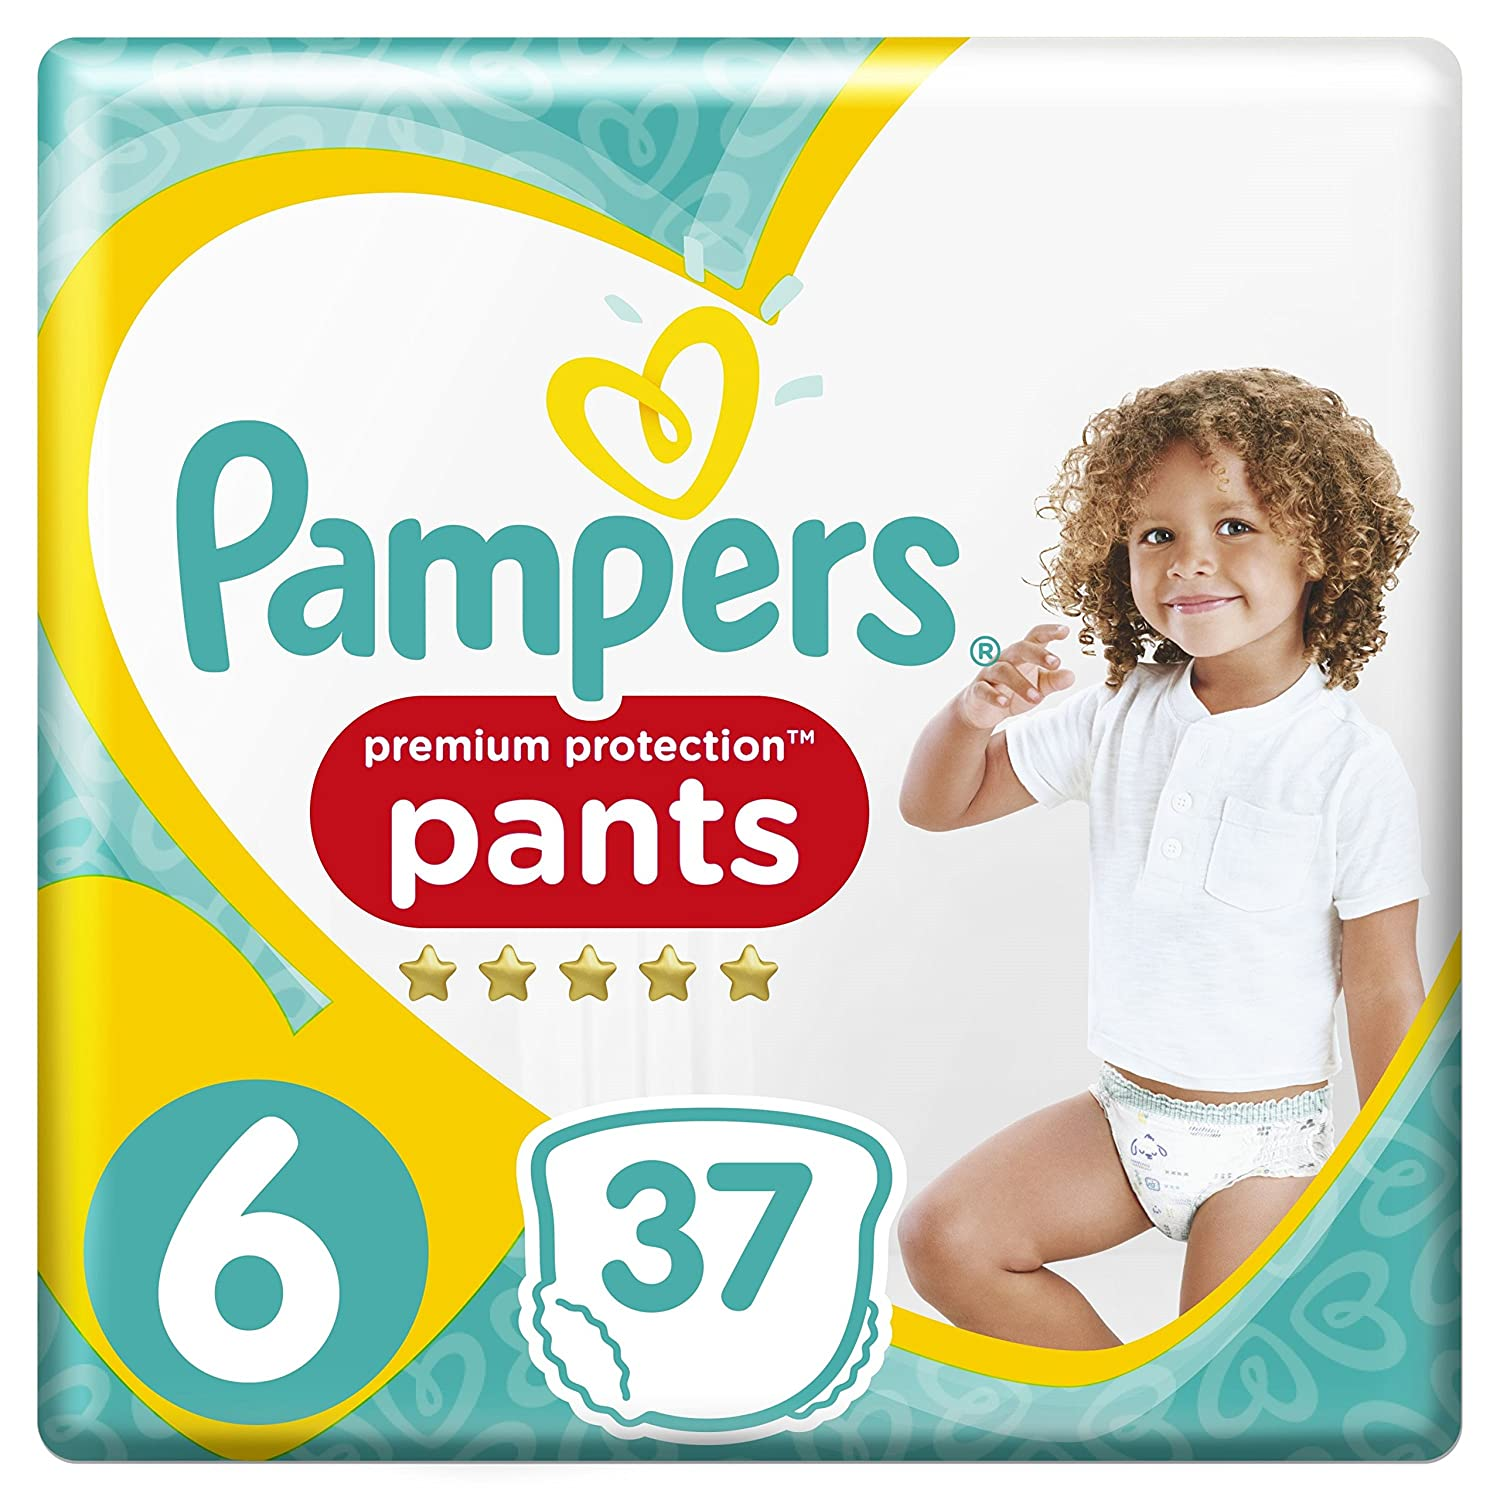 Pampers Premium Protection Windeln New Baby, Gr. 2 Mini (4-8 kg), Jumbopack, 1er Pack (1 x 68 Stück) 1er Pack (1 x 68 Stück) 107905213